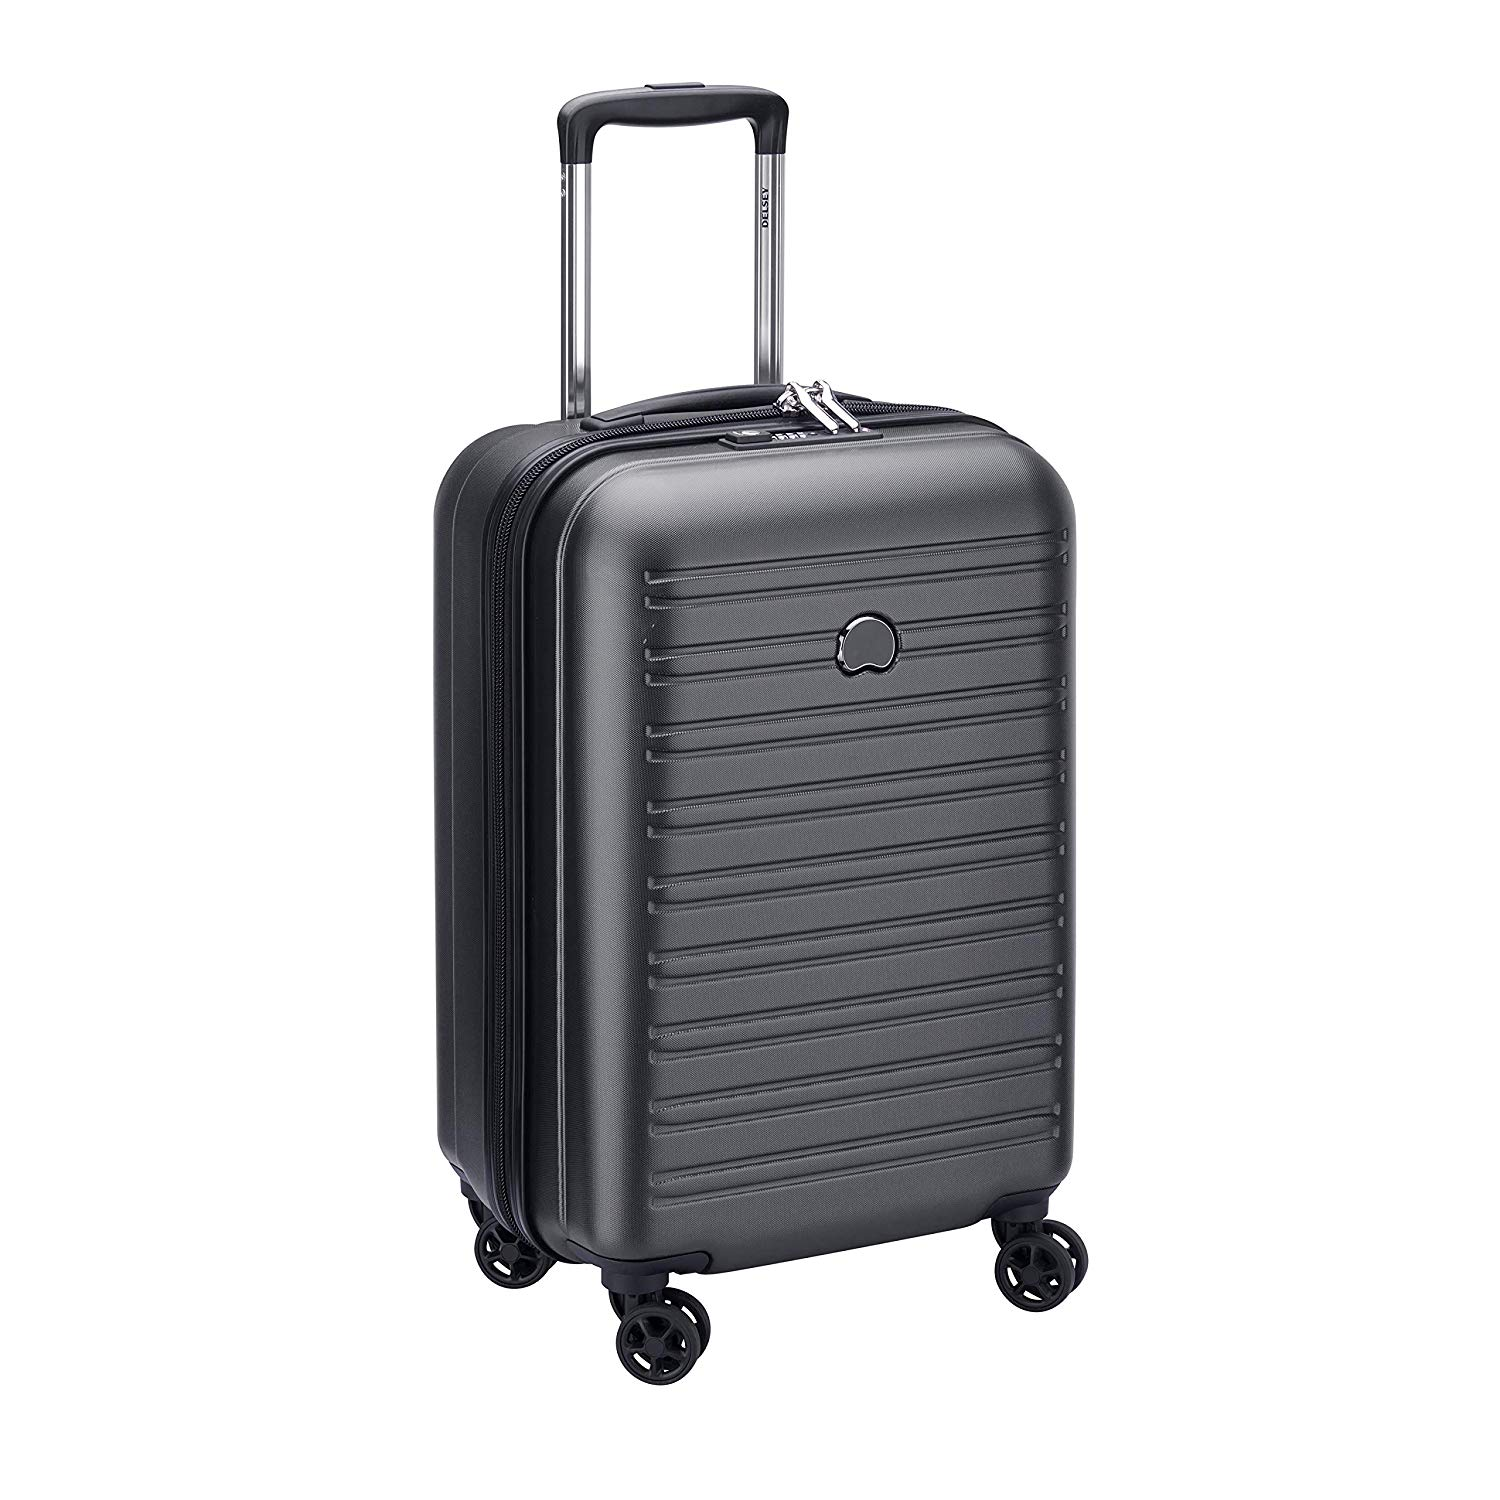 Delsey Segur 2.0 4 Wheel Cabin Suitcase - 55cm - Black 463859